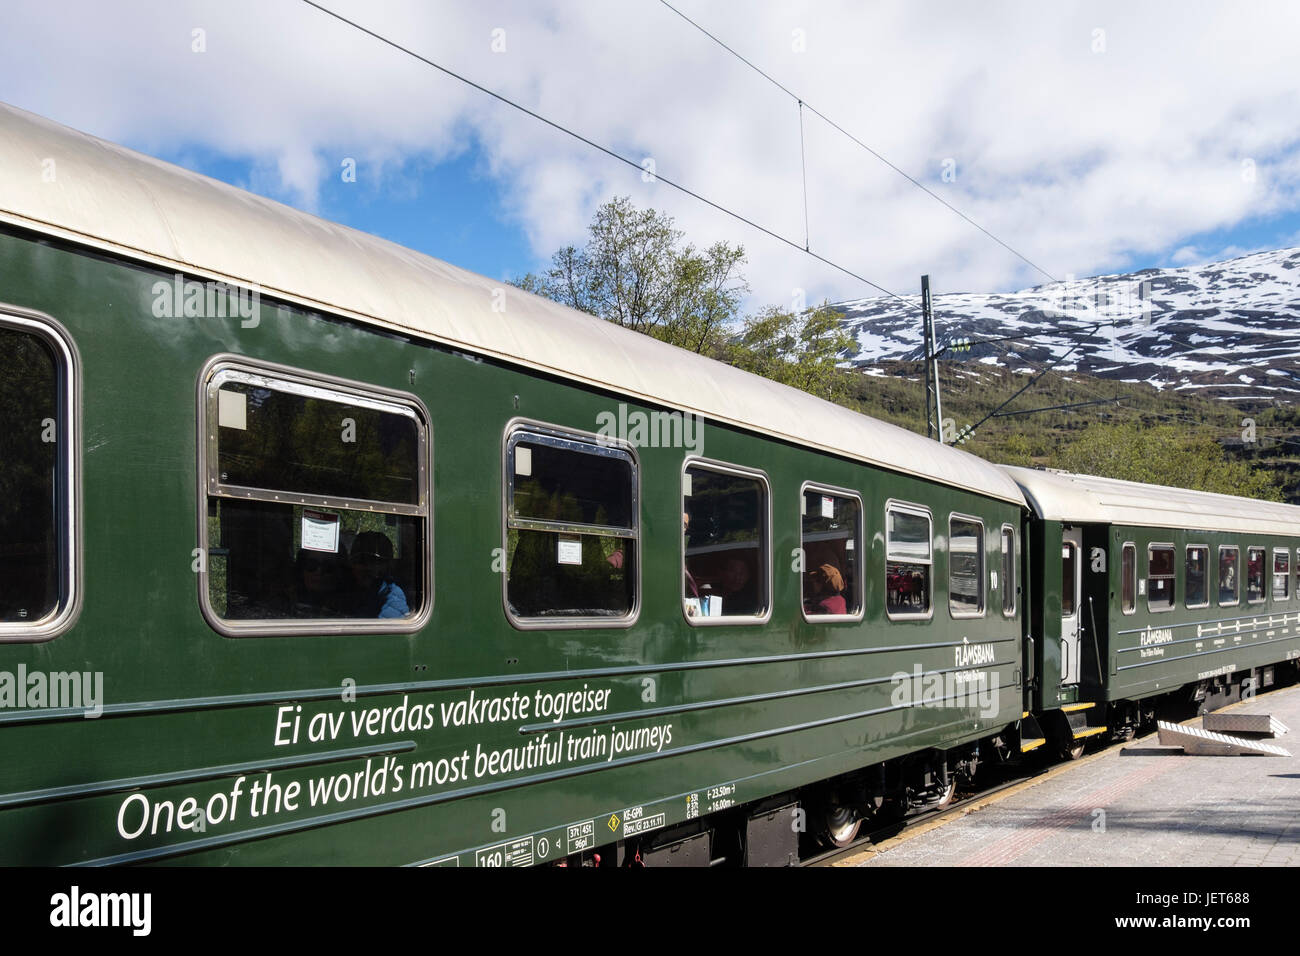 Flamsbana or Flam Railway train by the station platform. Described as one of world's most beautiful railways. - Stock Image